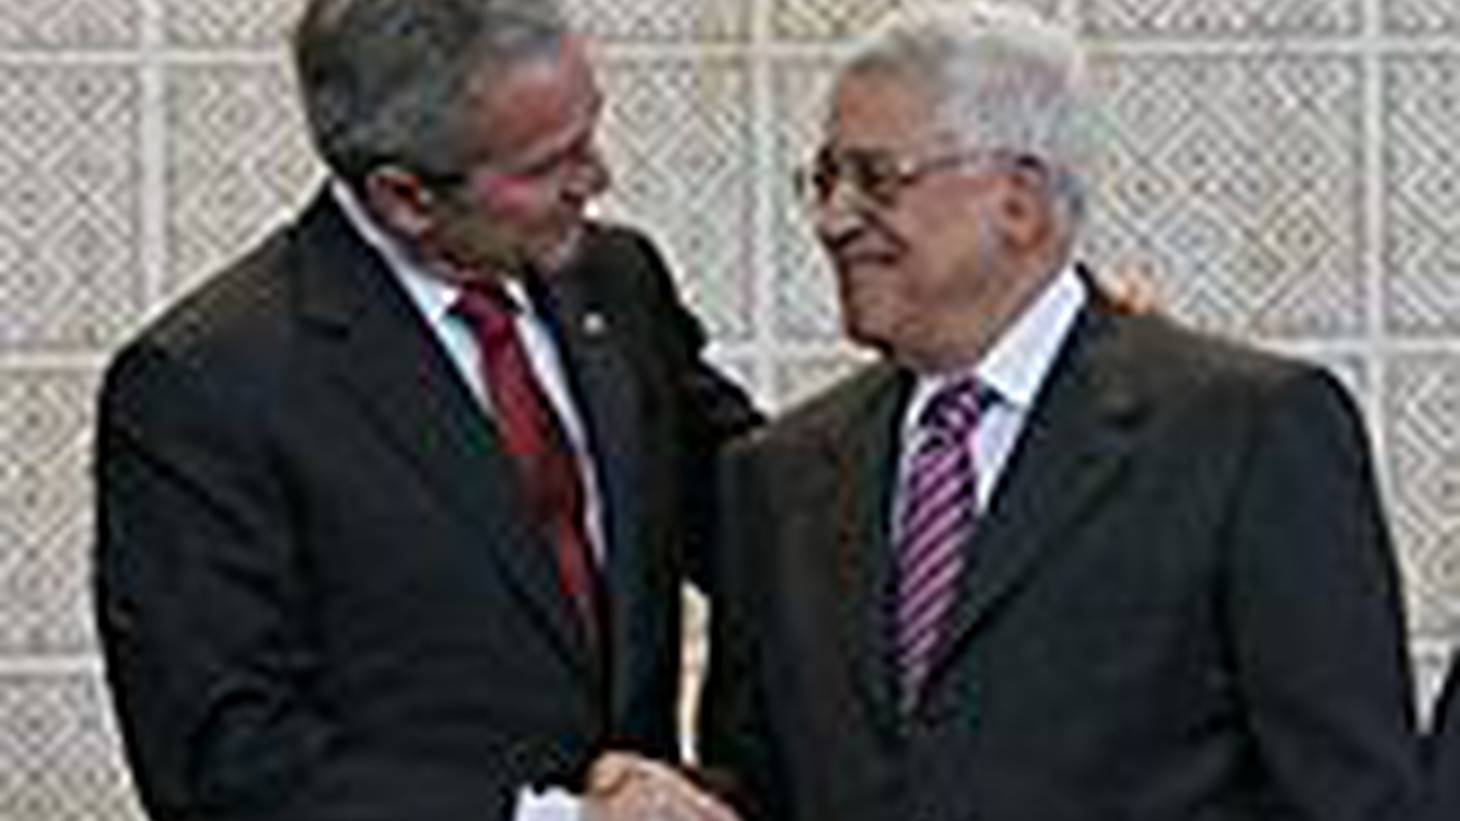 In Ramallah today, President Bush laid out more of his vision for a Palestinian state next to Israel. Will the parties agree, or is it too little, too late? Also, are the Arab states still hoping to isolate Iran? Are they looking ahead to next president of the US? Also, American attacks against al Qaeda are up as political expectations are down in Iraq, and the presidential campaigns may going on for a long while. We hear about today's developments in both parties.